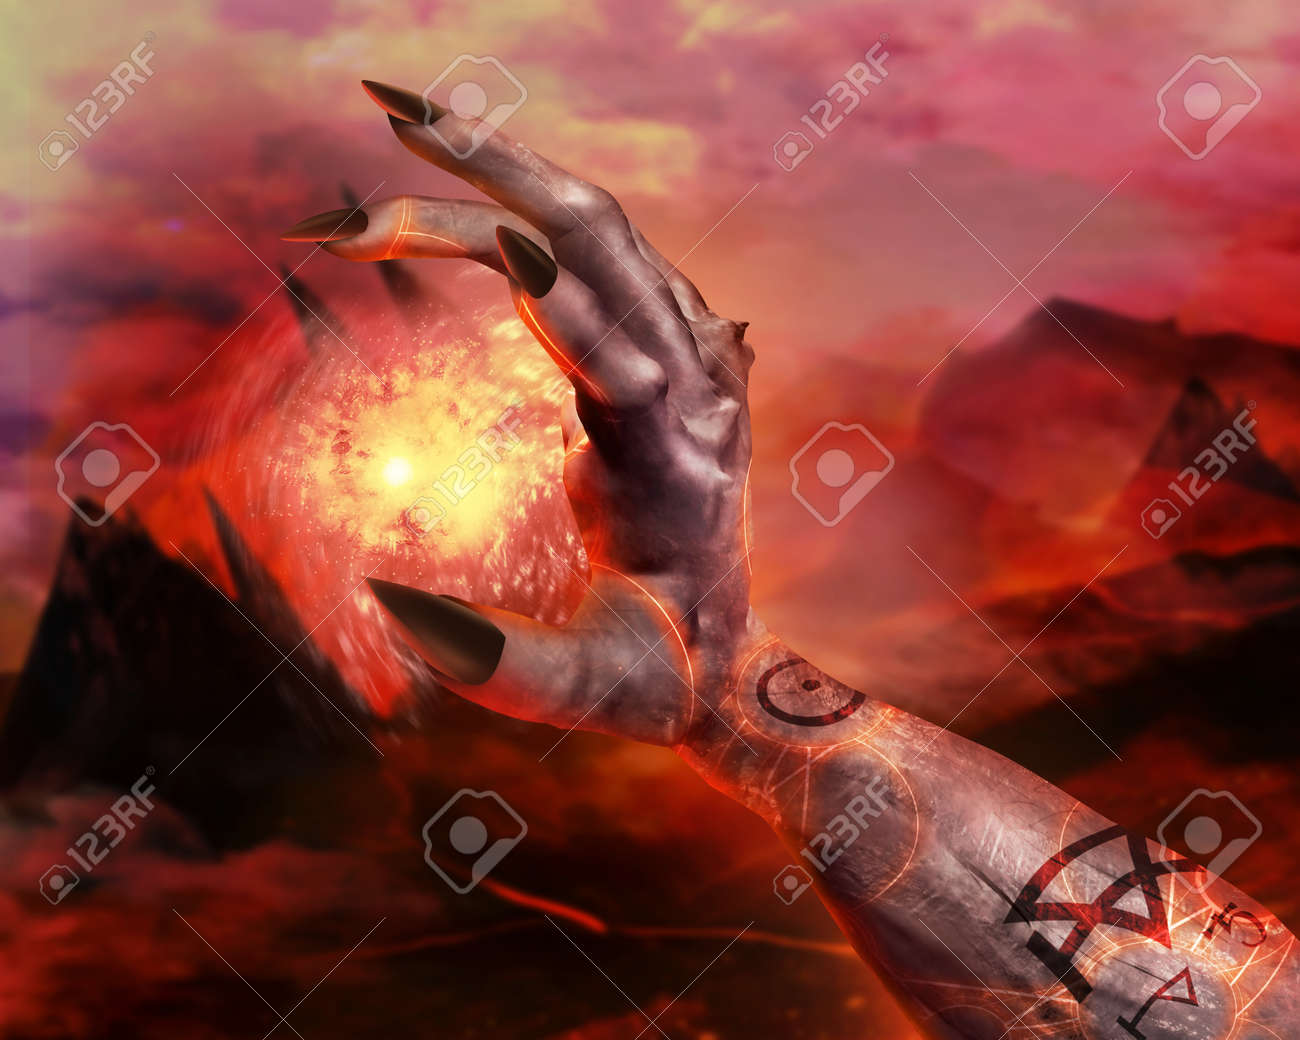 3d First Person View Demonic Hand Holding Fireball Spell With Pentacle Glowing Signs On Hellish Landscape